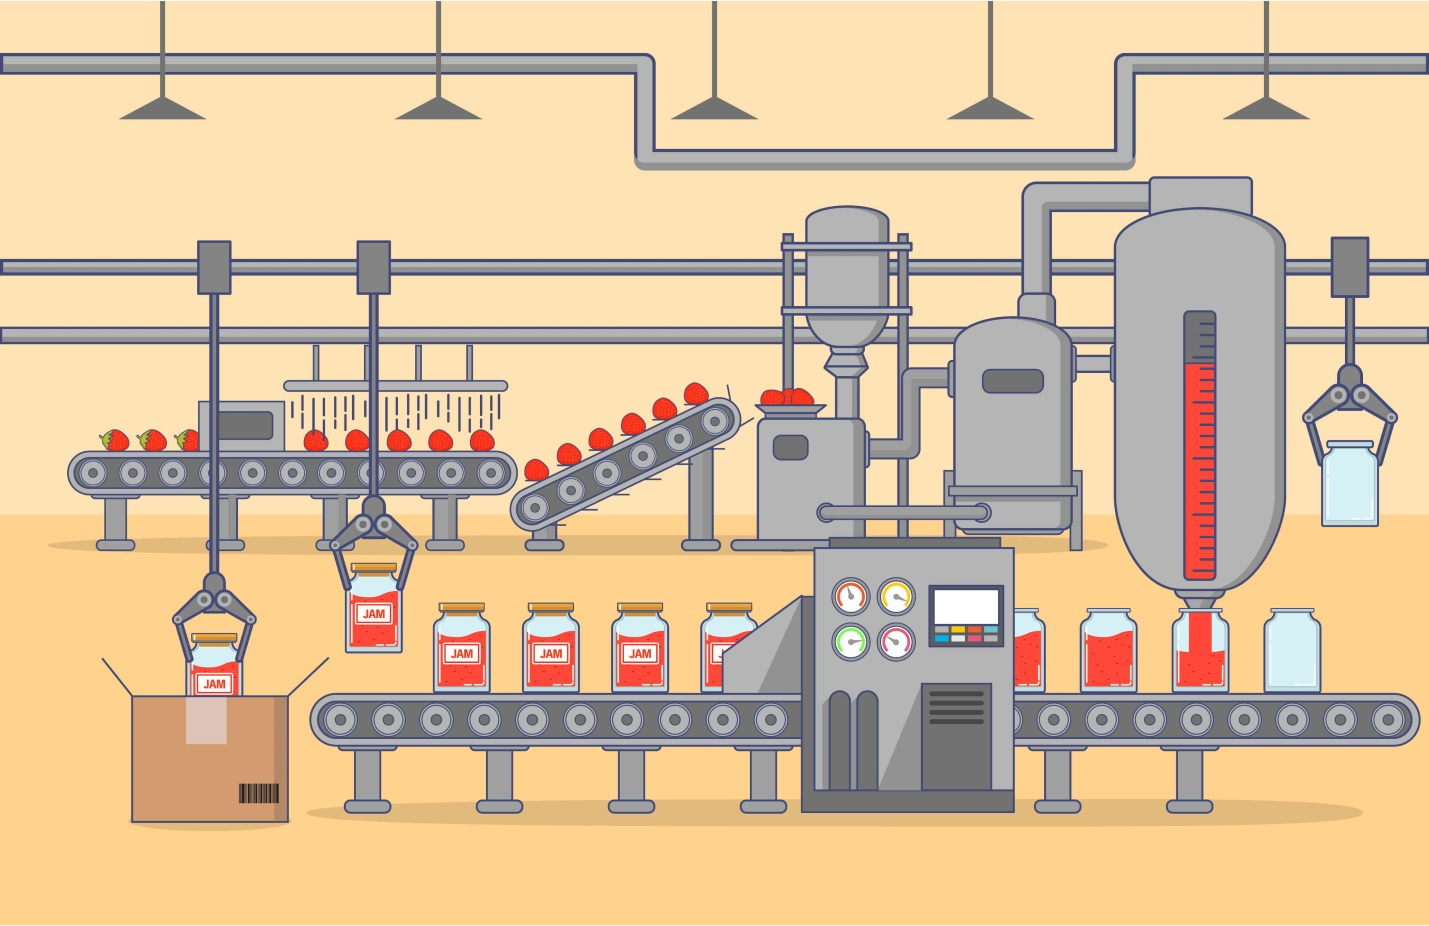 Overview of Food Processing Equipment - Types, Applications